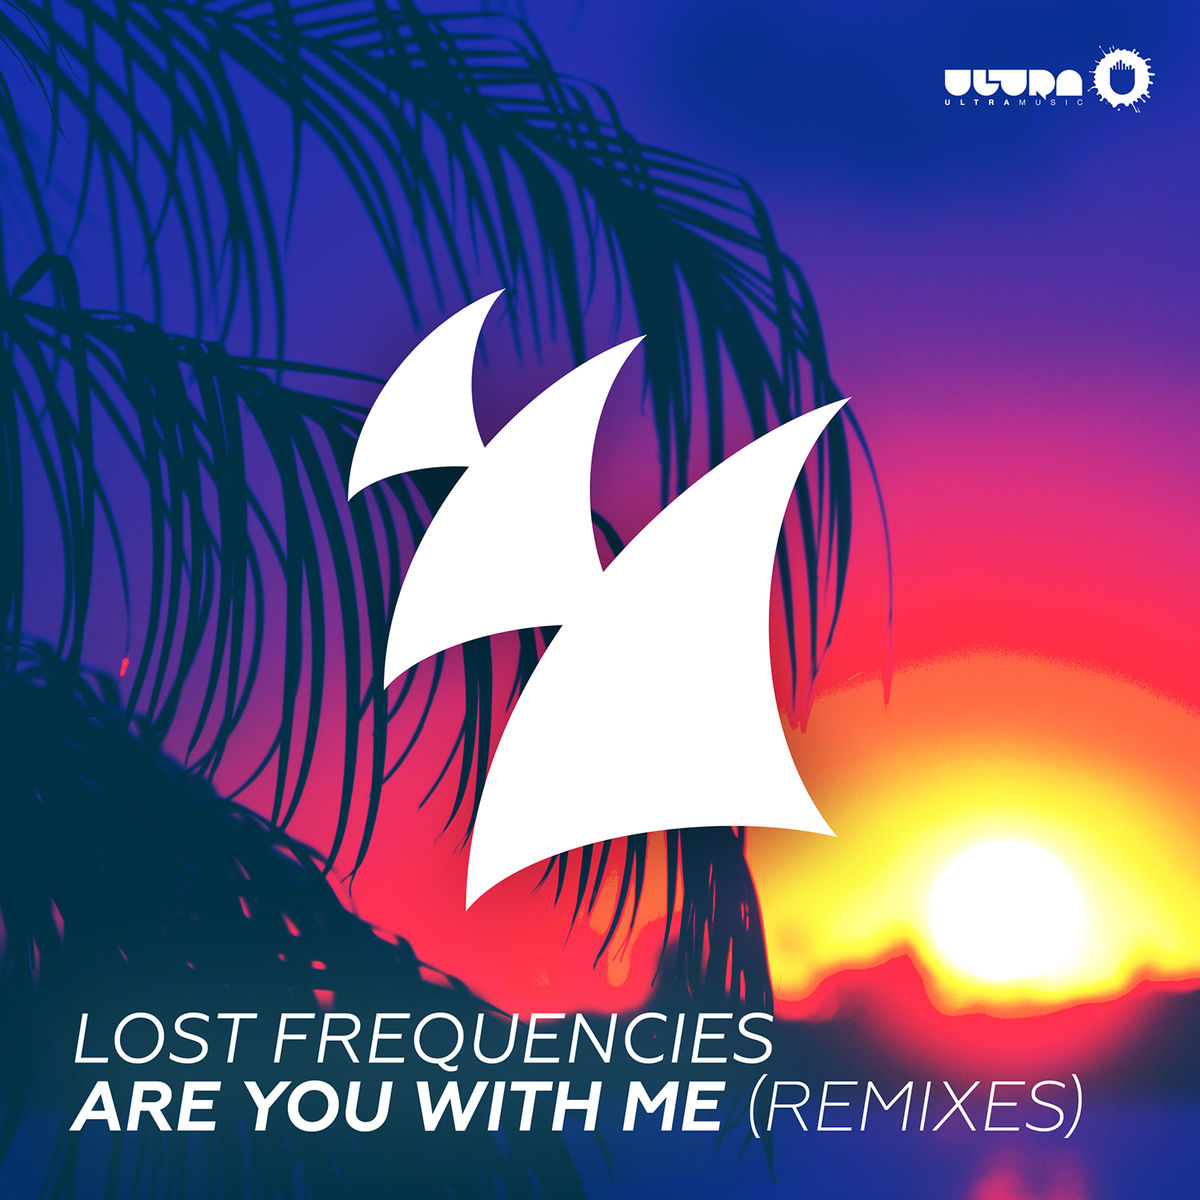 lost frequencies reality download mp3 free